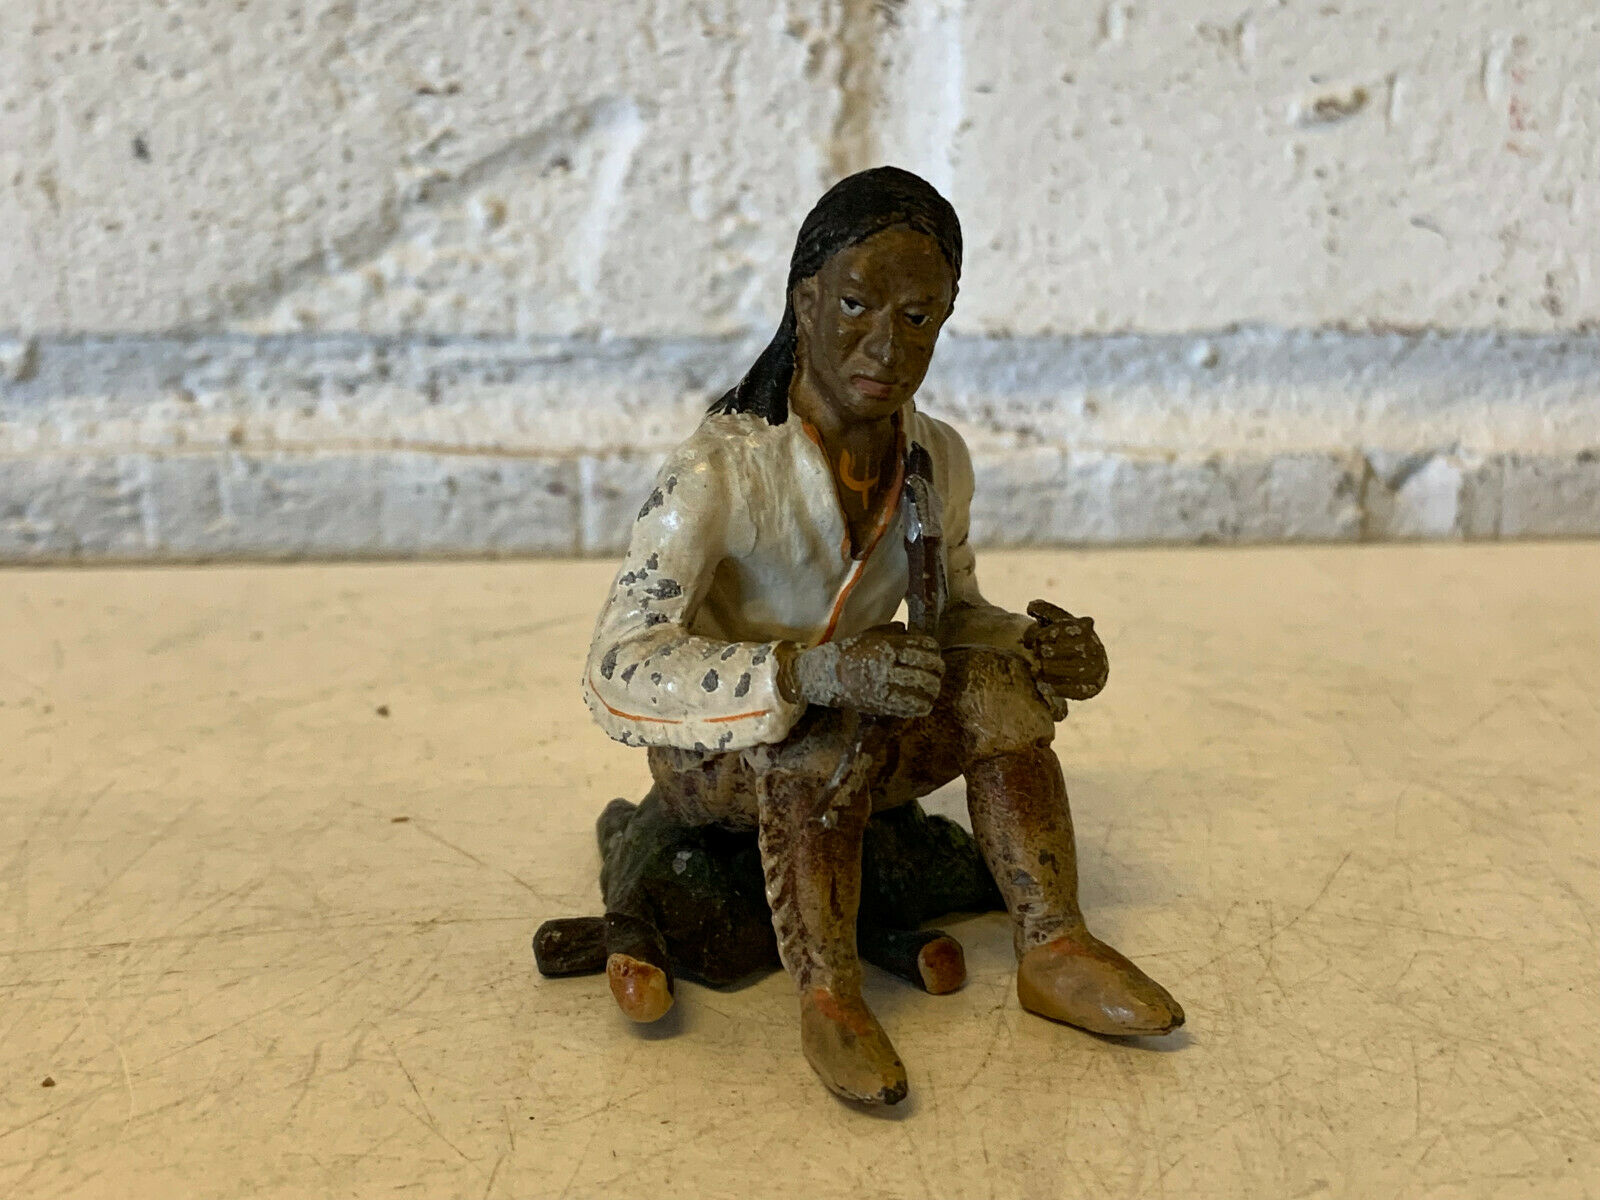 Antique Painted Lead Toy Native American Indian Figurine Holding Ax Hatchet Axe